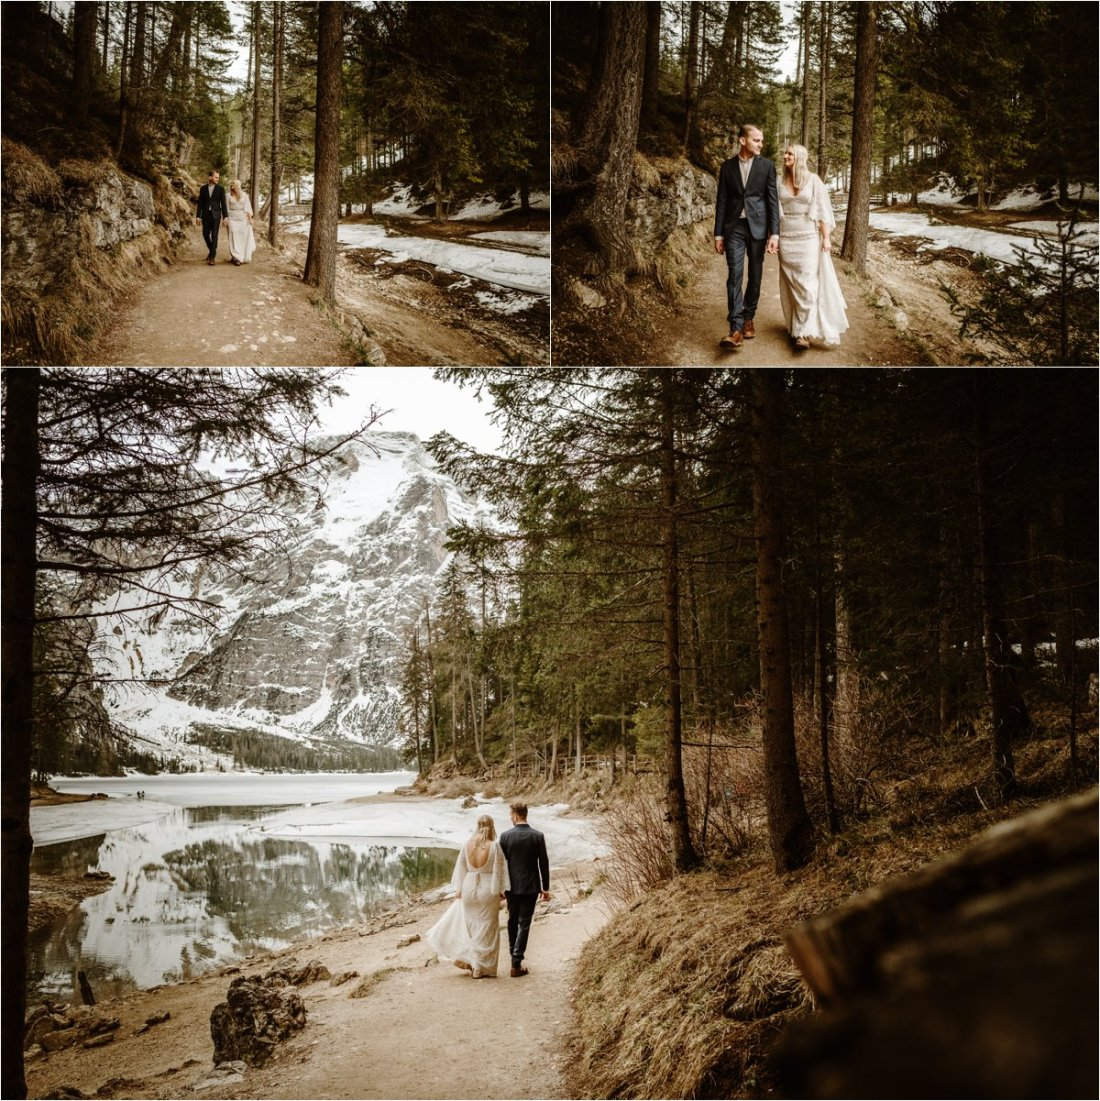 Erika & Nathan explore the footpaths that lead around the edge of Lago di Braies, Pragser Wildsee lake in the Dolomites. Photos by Wild Connections Photography - Alps & Dolomites Elopement Photographer